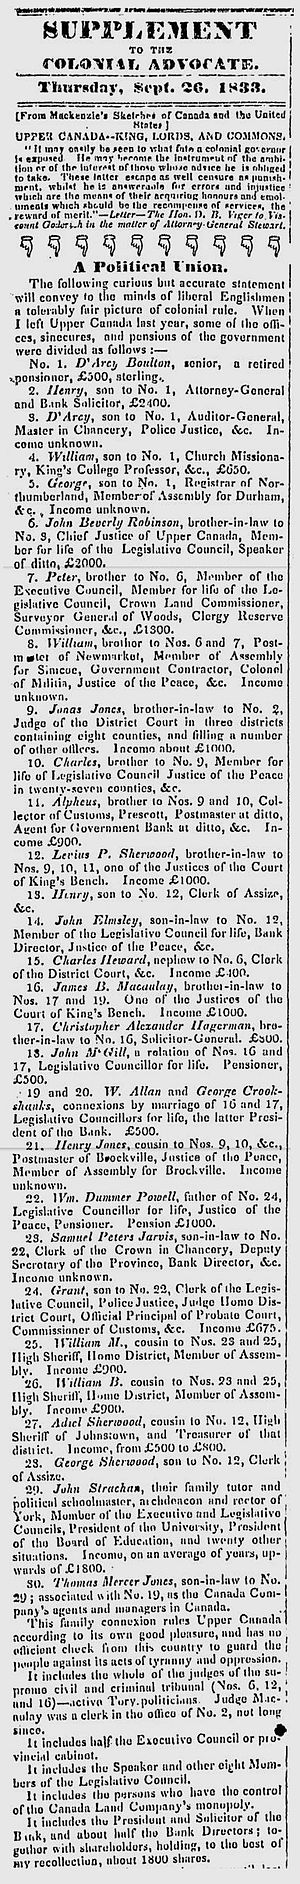 Colonial Advocate - Listing of the Family Compact members in the government and their relations, by William Lyon Mackenzie, Sept. 19, 1833 in the Colonial Advocate